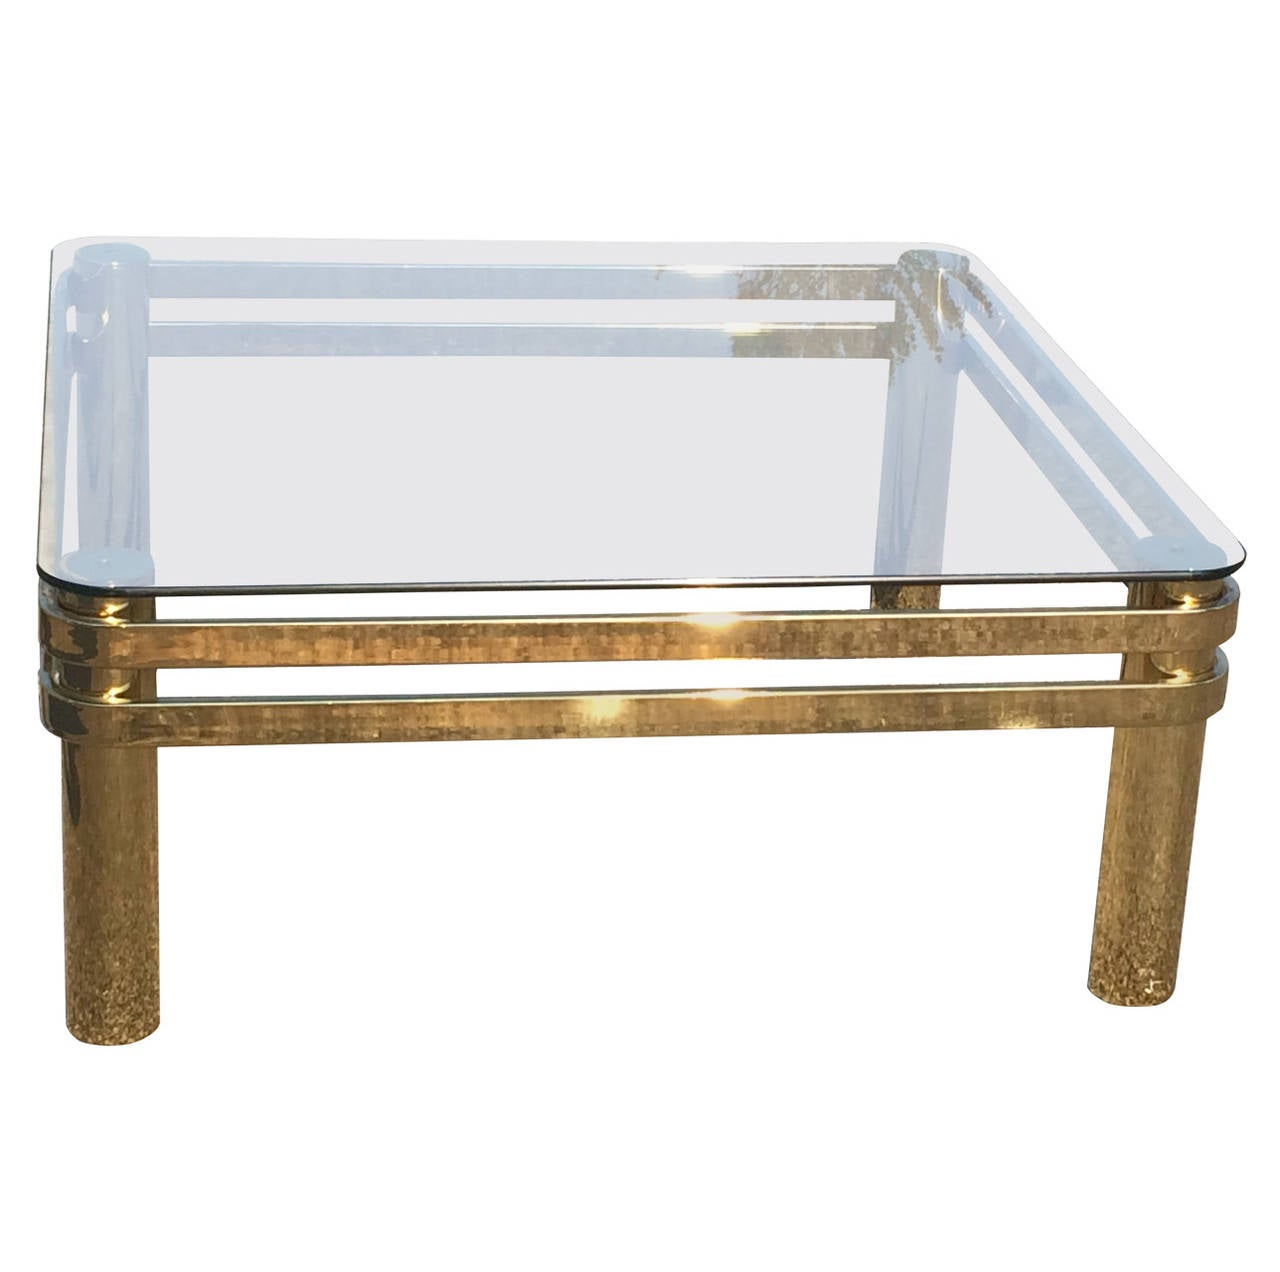 Hollywood Regency Brass And Glass Coffee Table Attributed To Pace For Sale At 1stdibs